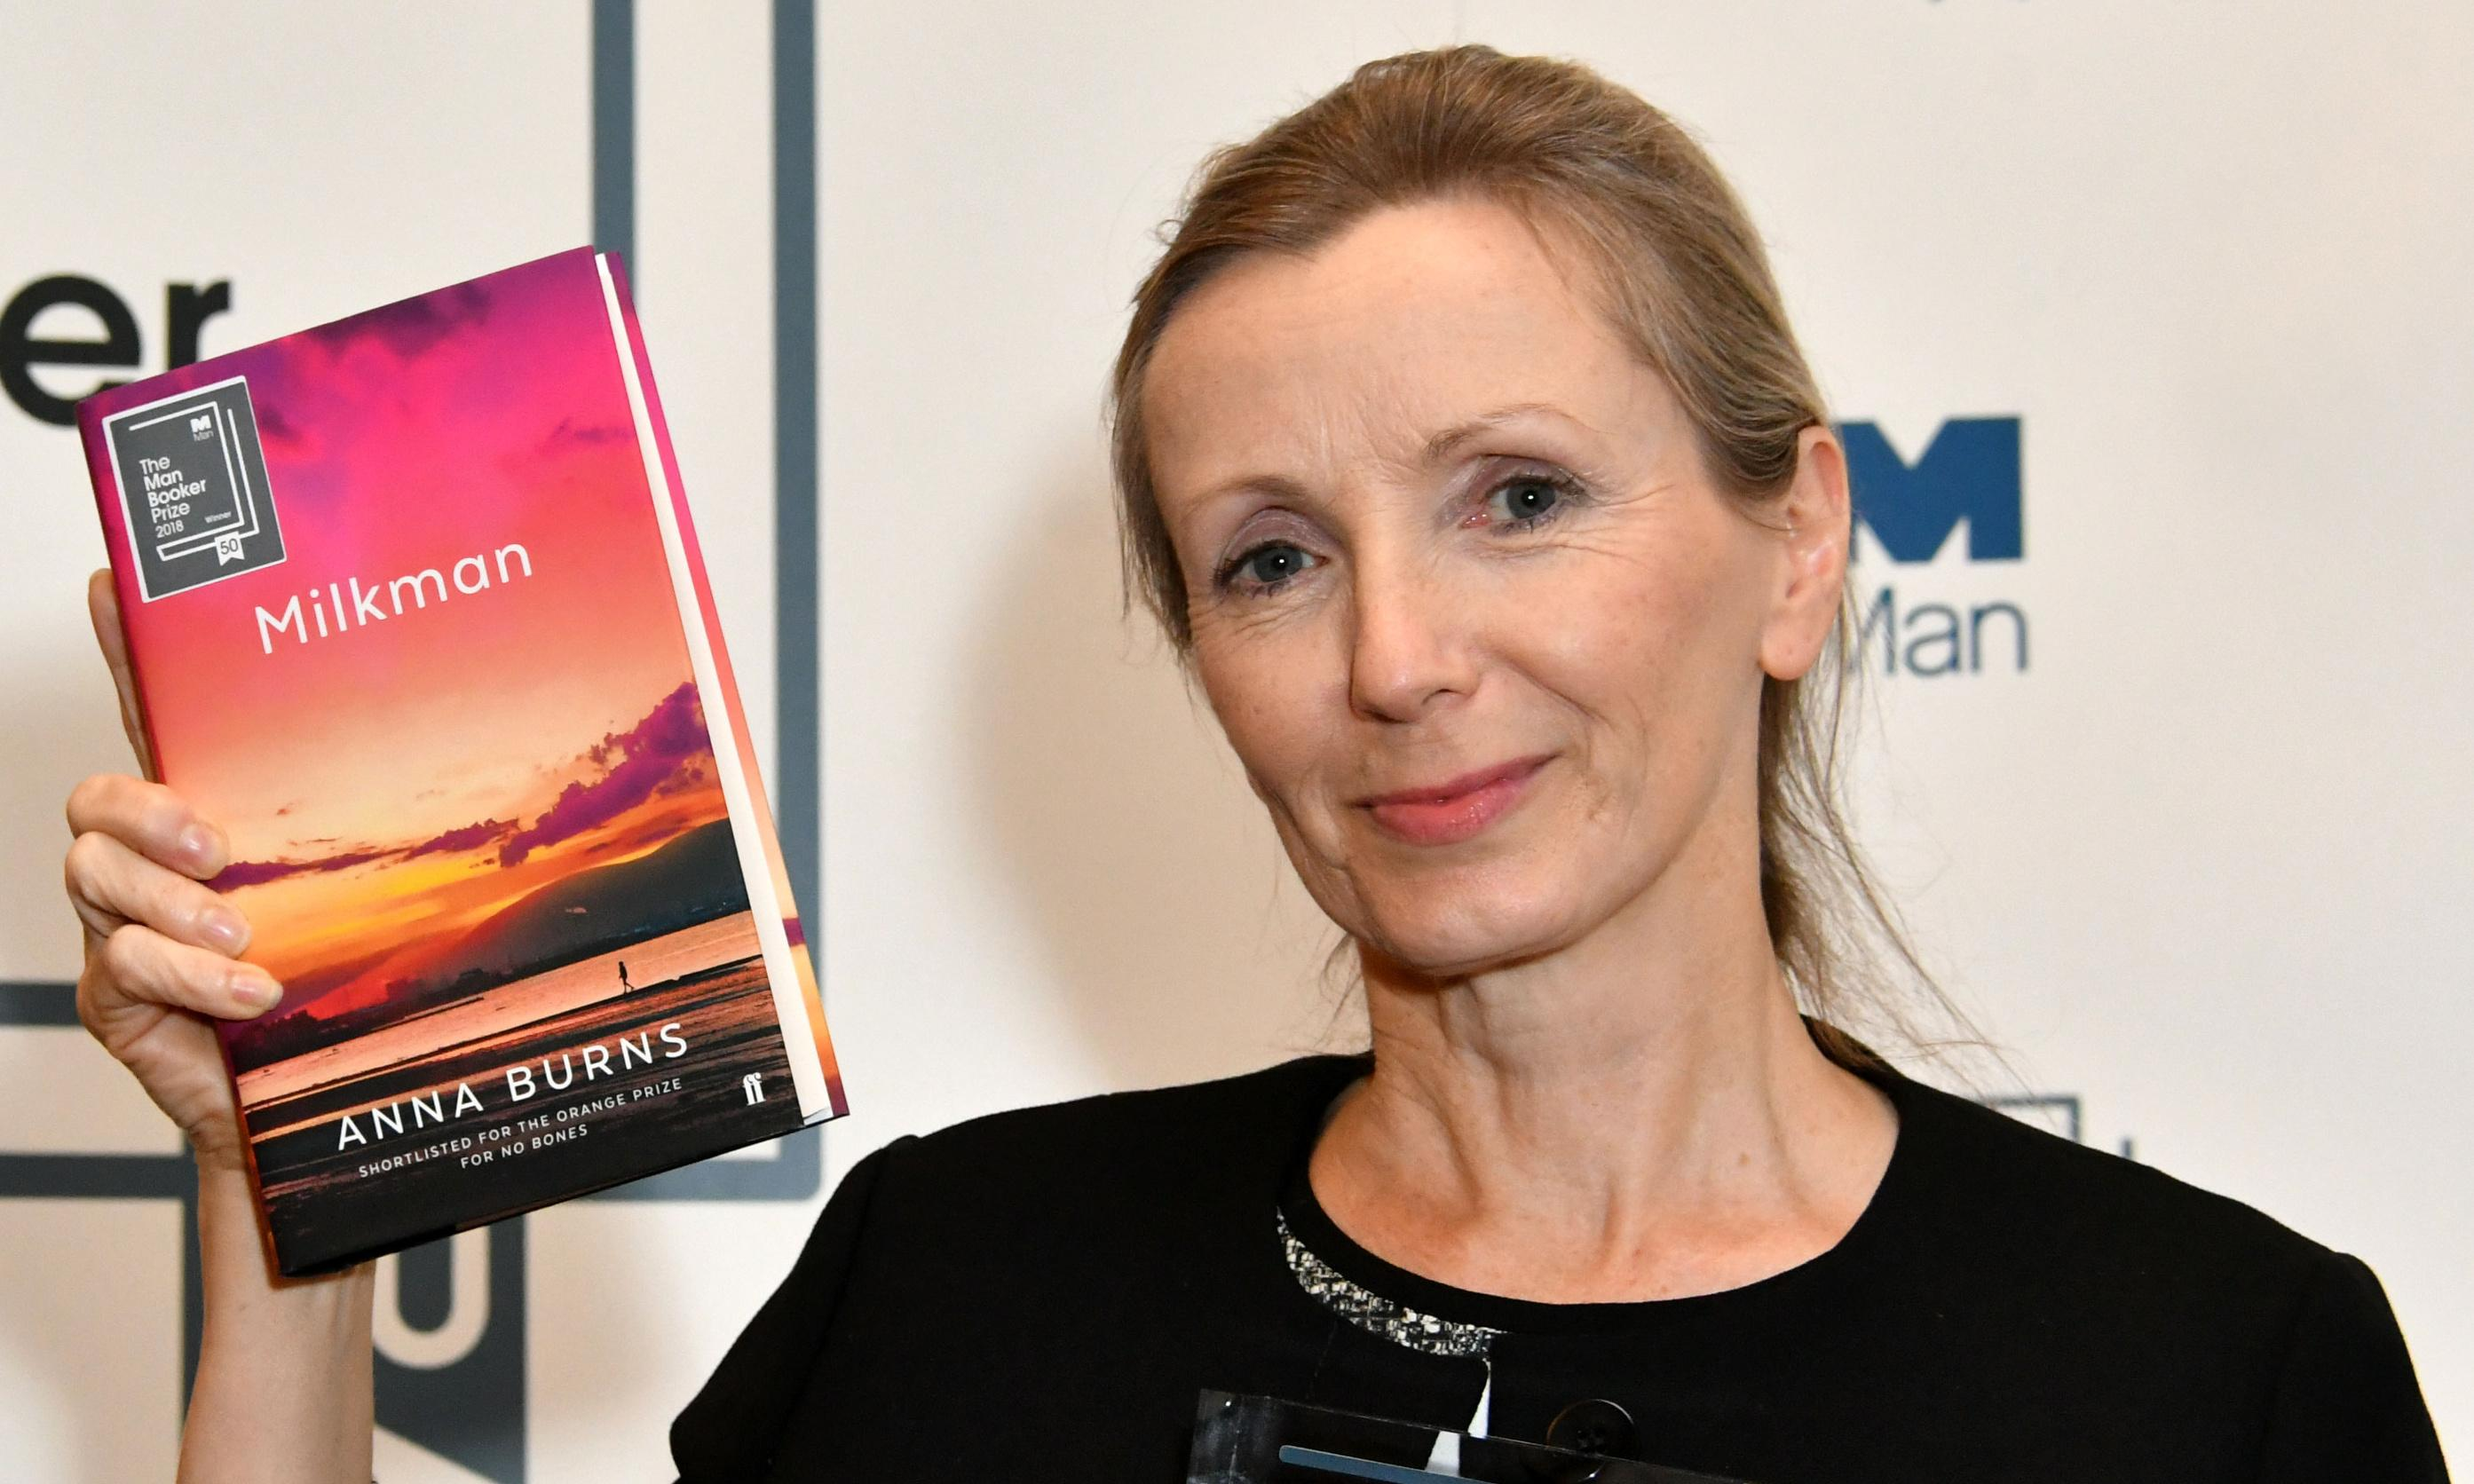 Anna Burns wins Man Booker prize for 'incredibly original' Milkman